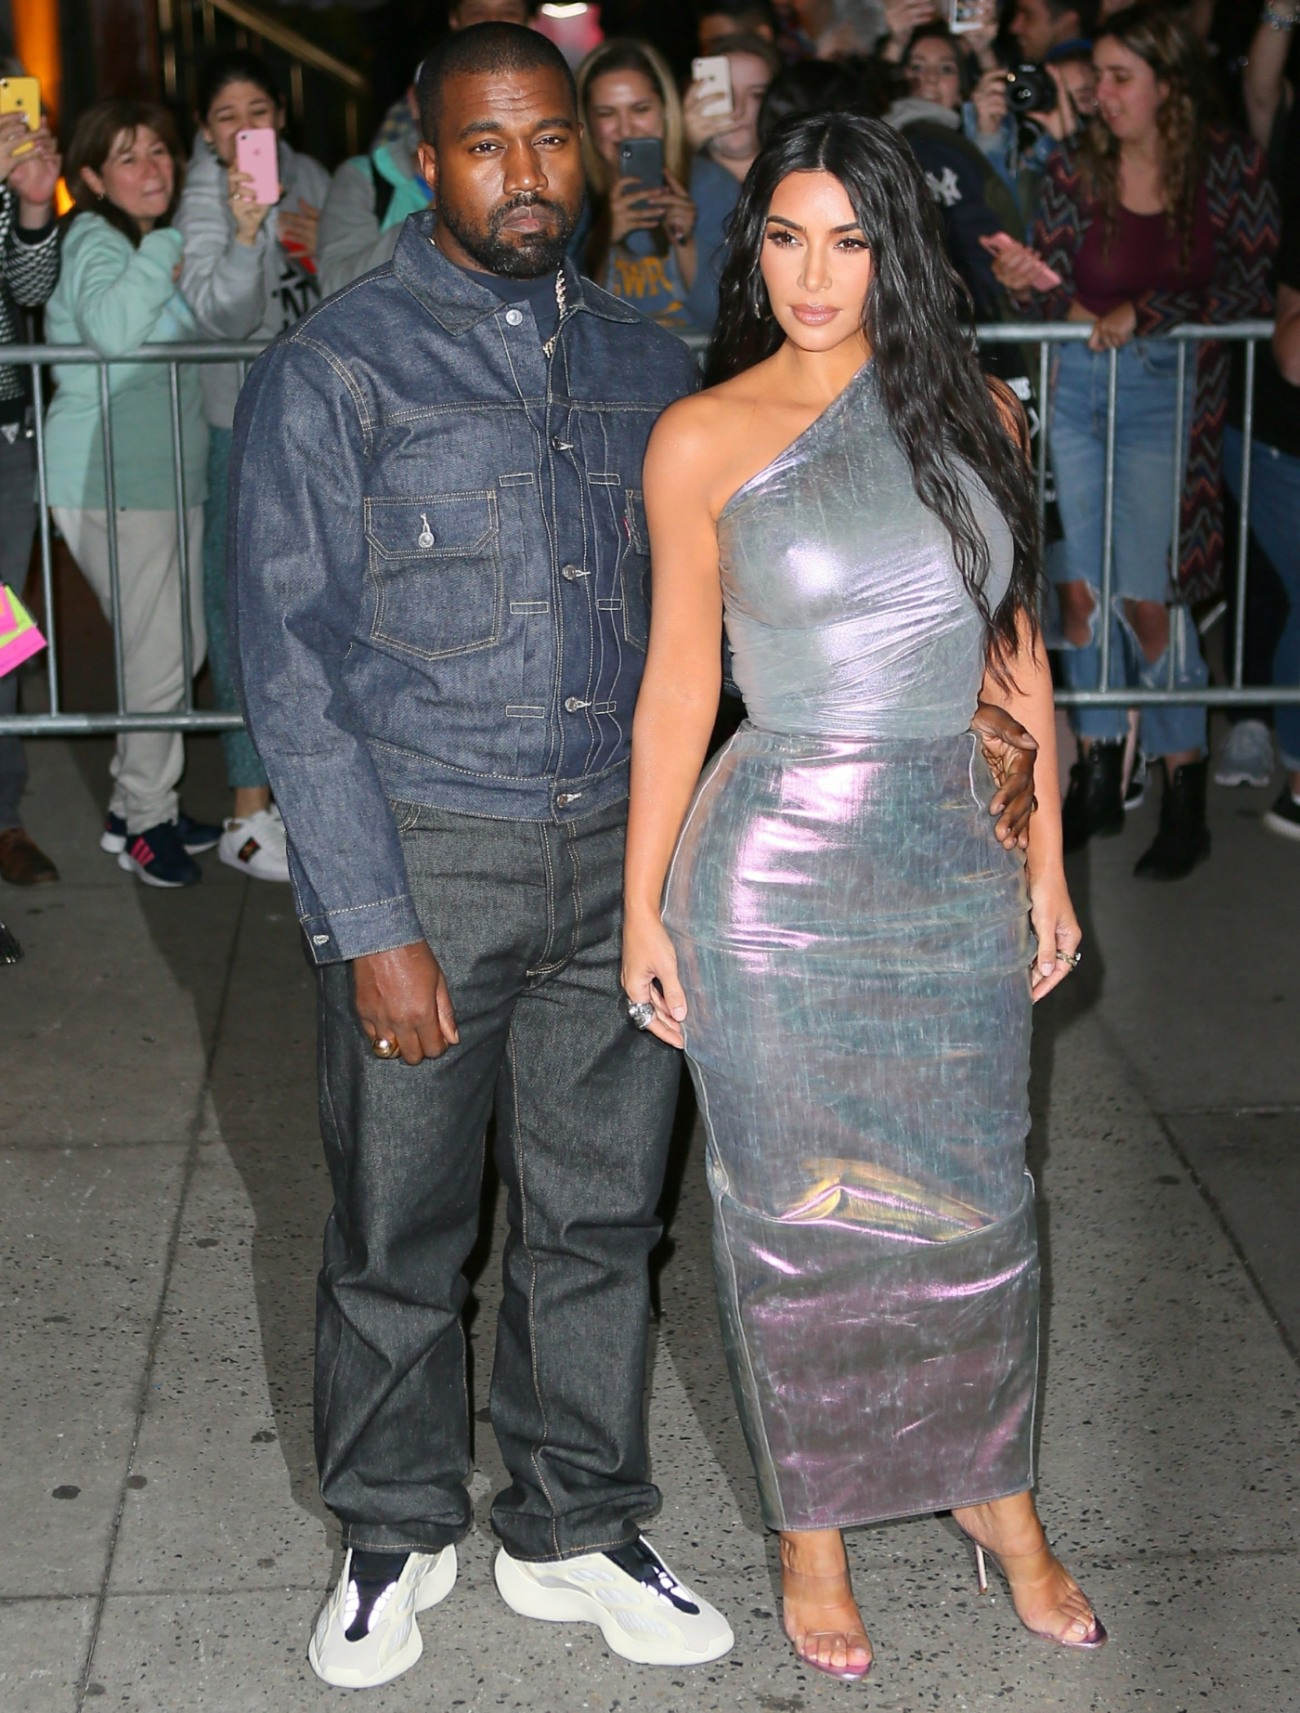 Kanye West 'suffers on social media' because his wife & other women are too sexy